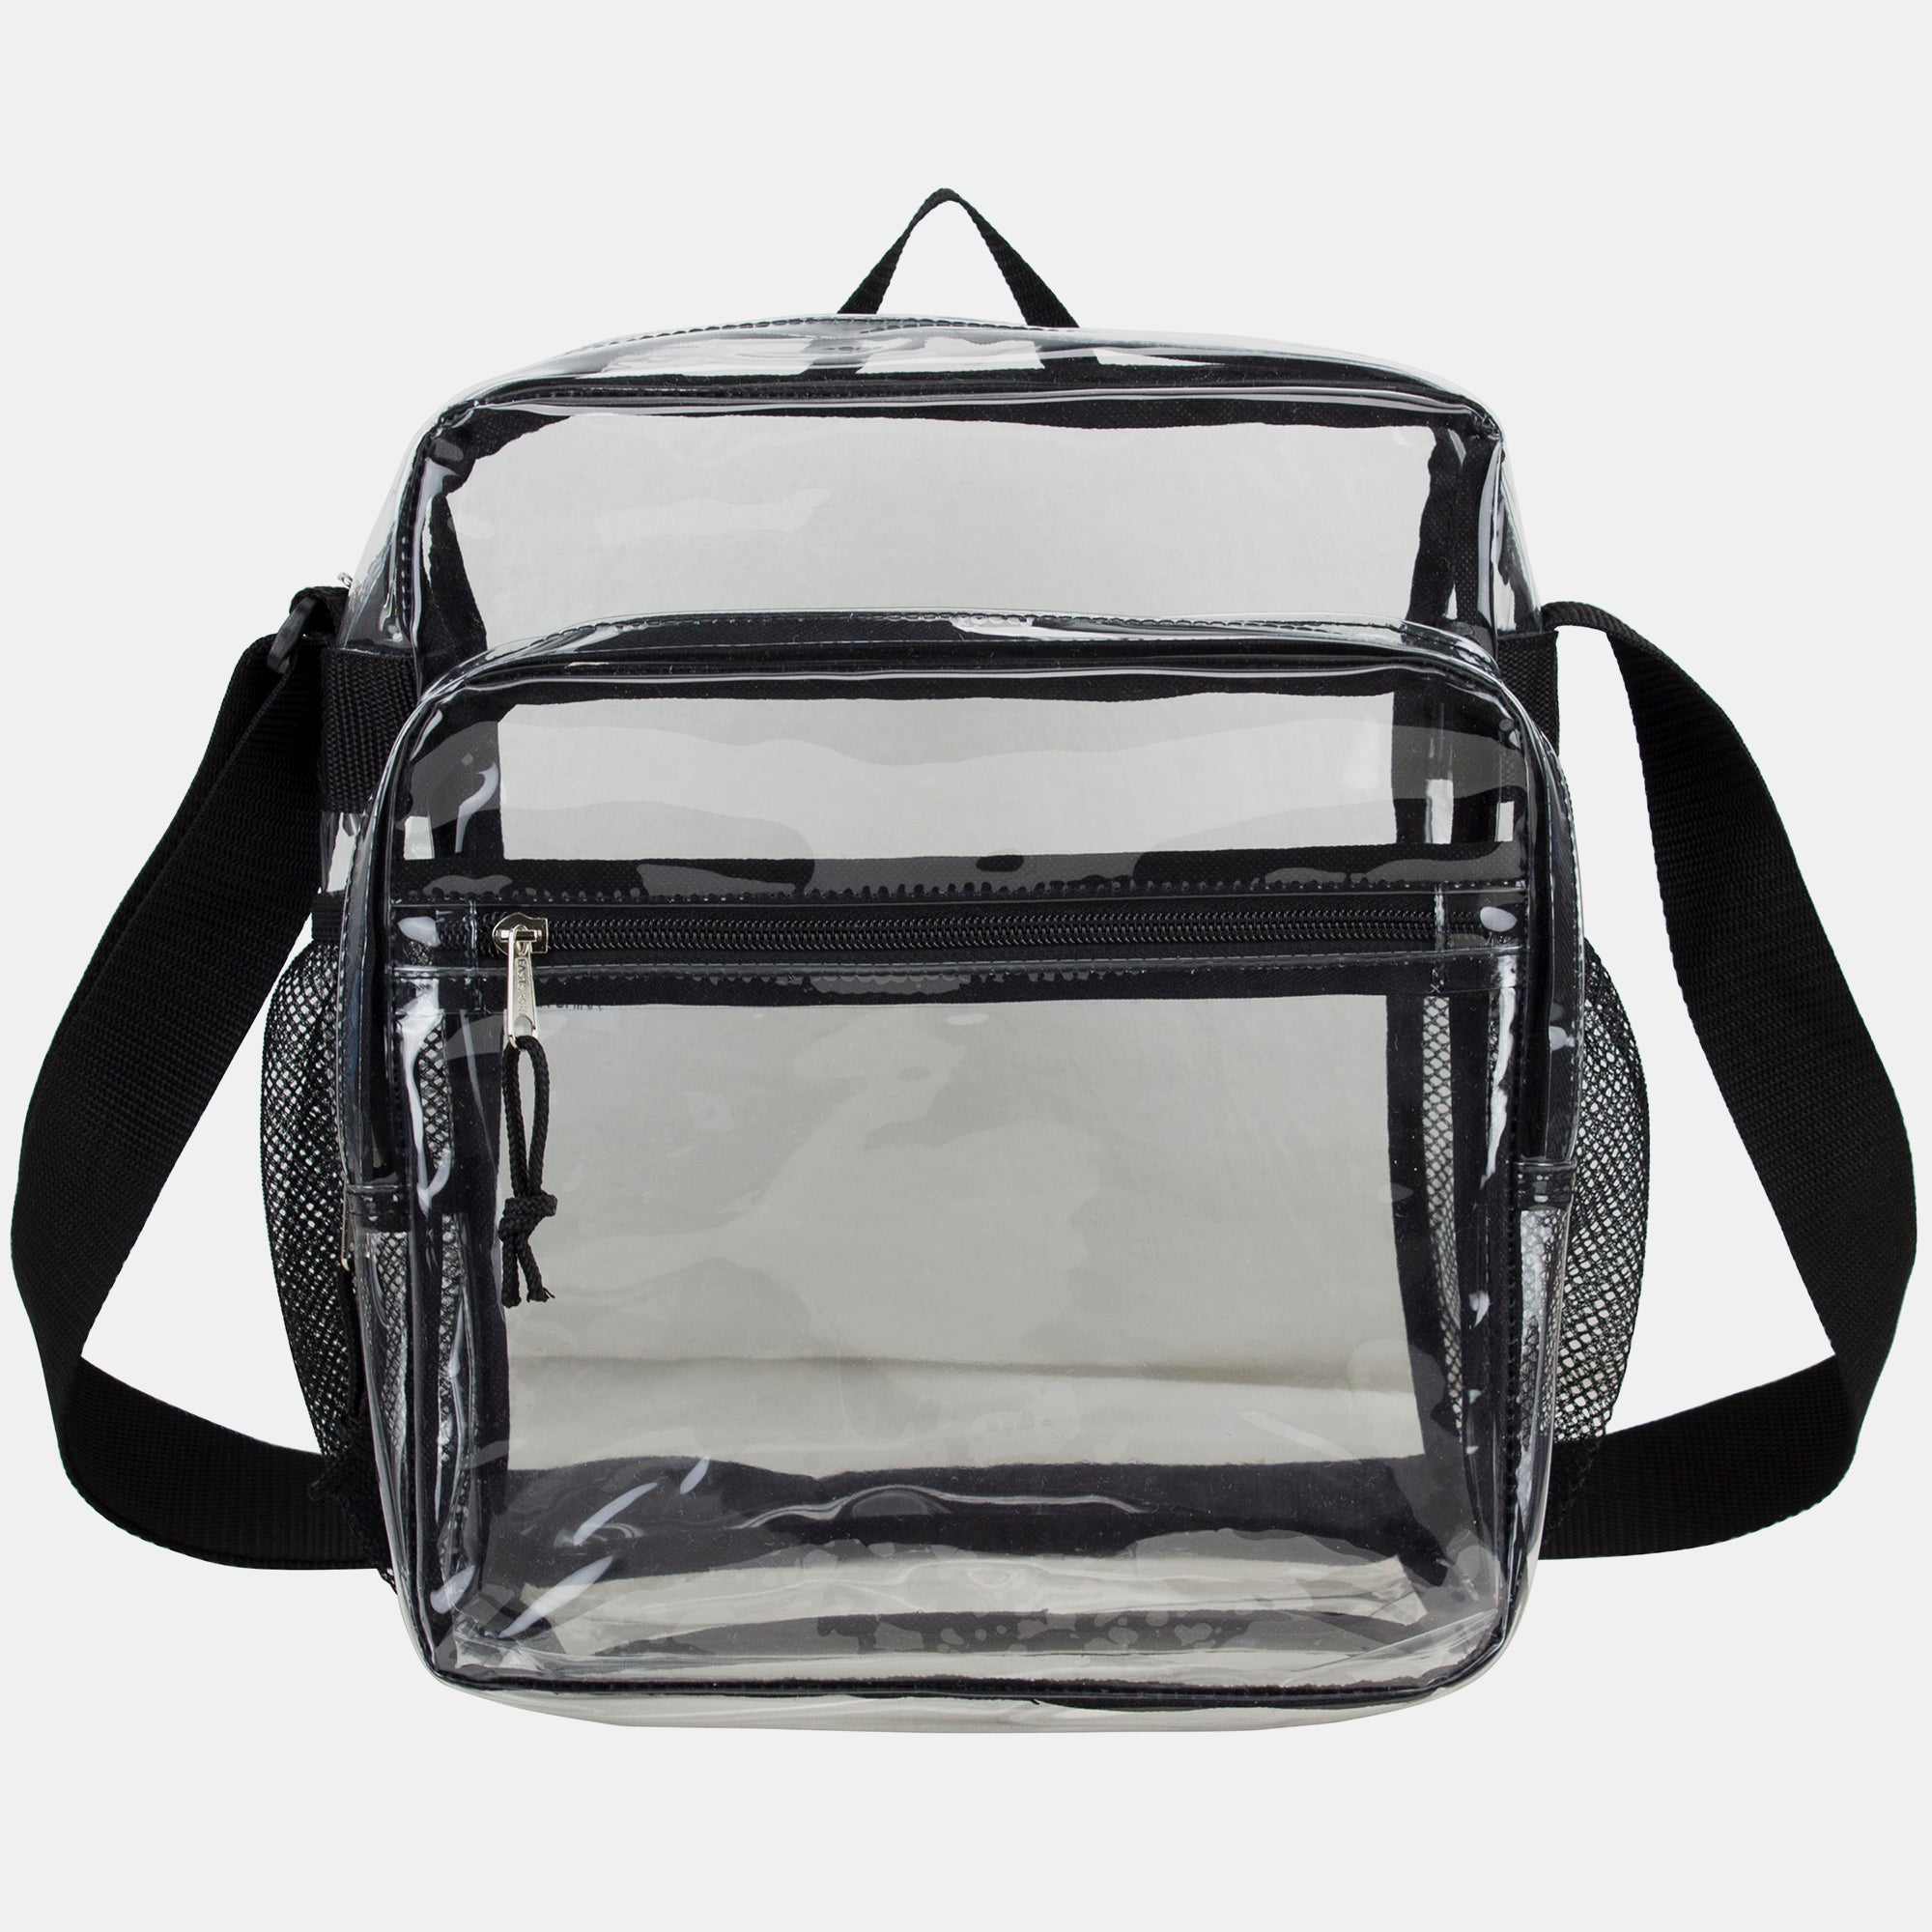 Eastsport Clear Stadium Messenger Bag with Side Mesh Pockets